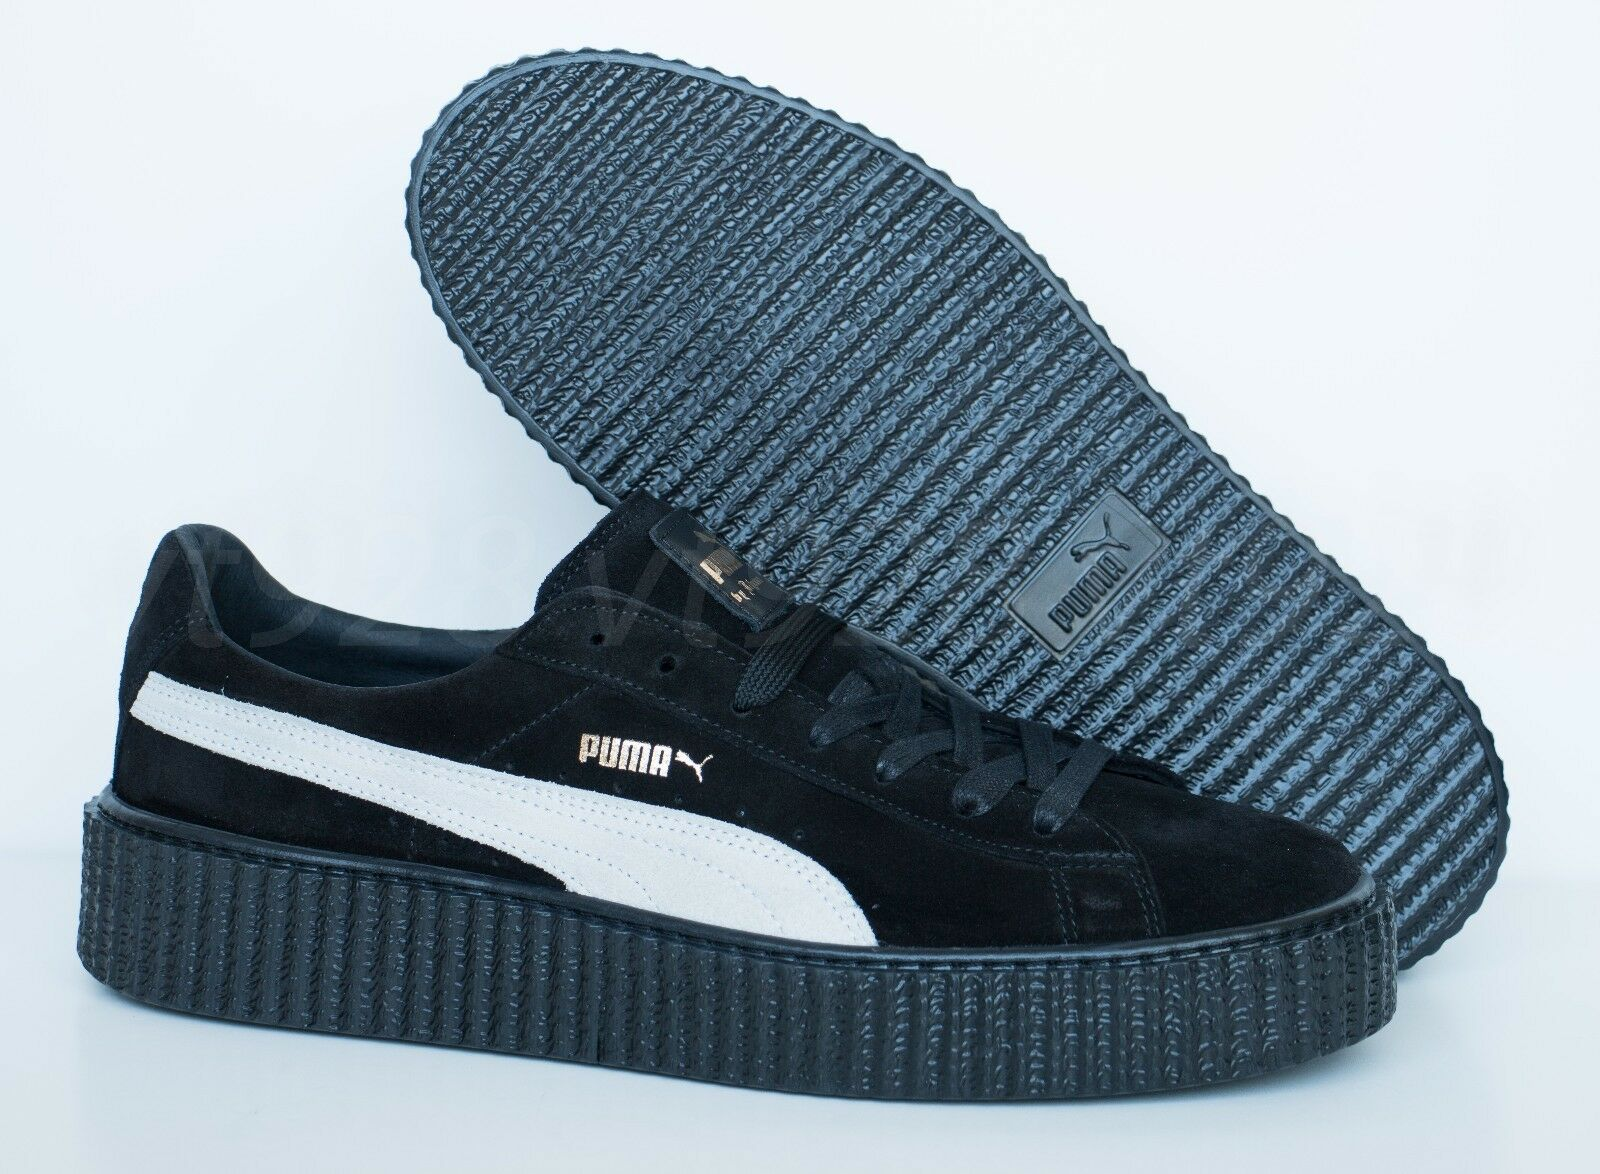 timeless design 8ff40 bc75e NEW PUMA FENTY BY RIHANNA CREEPERS SUEDE BLACK - WHITE MEN'S SHOES ALL SIZES